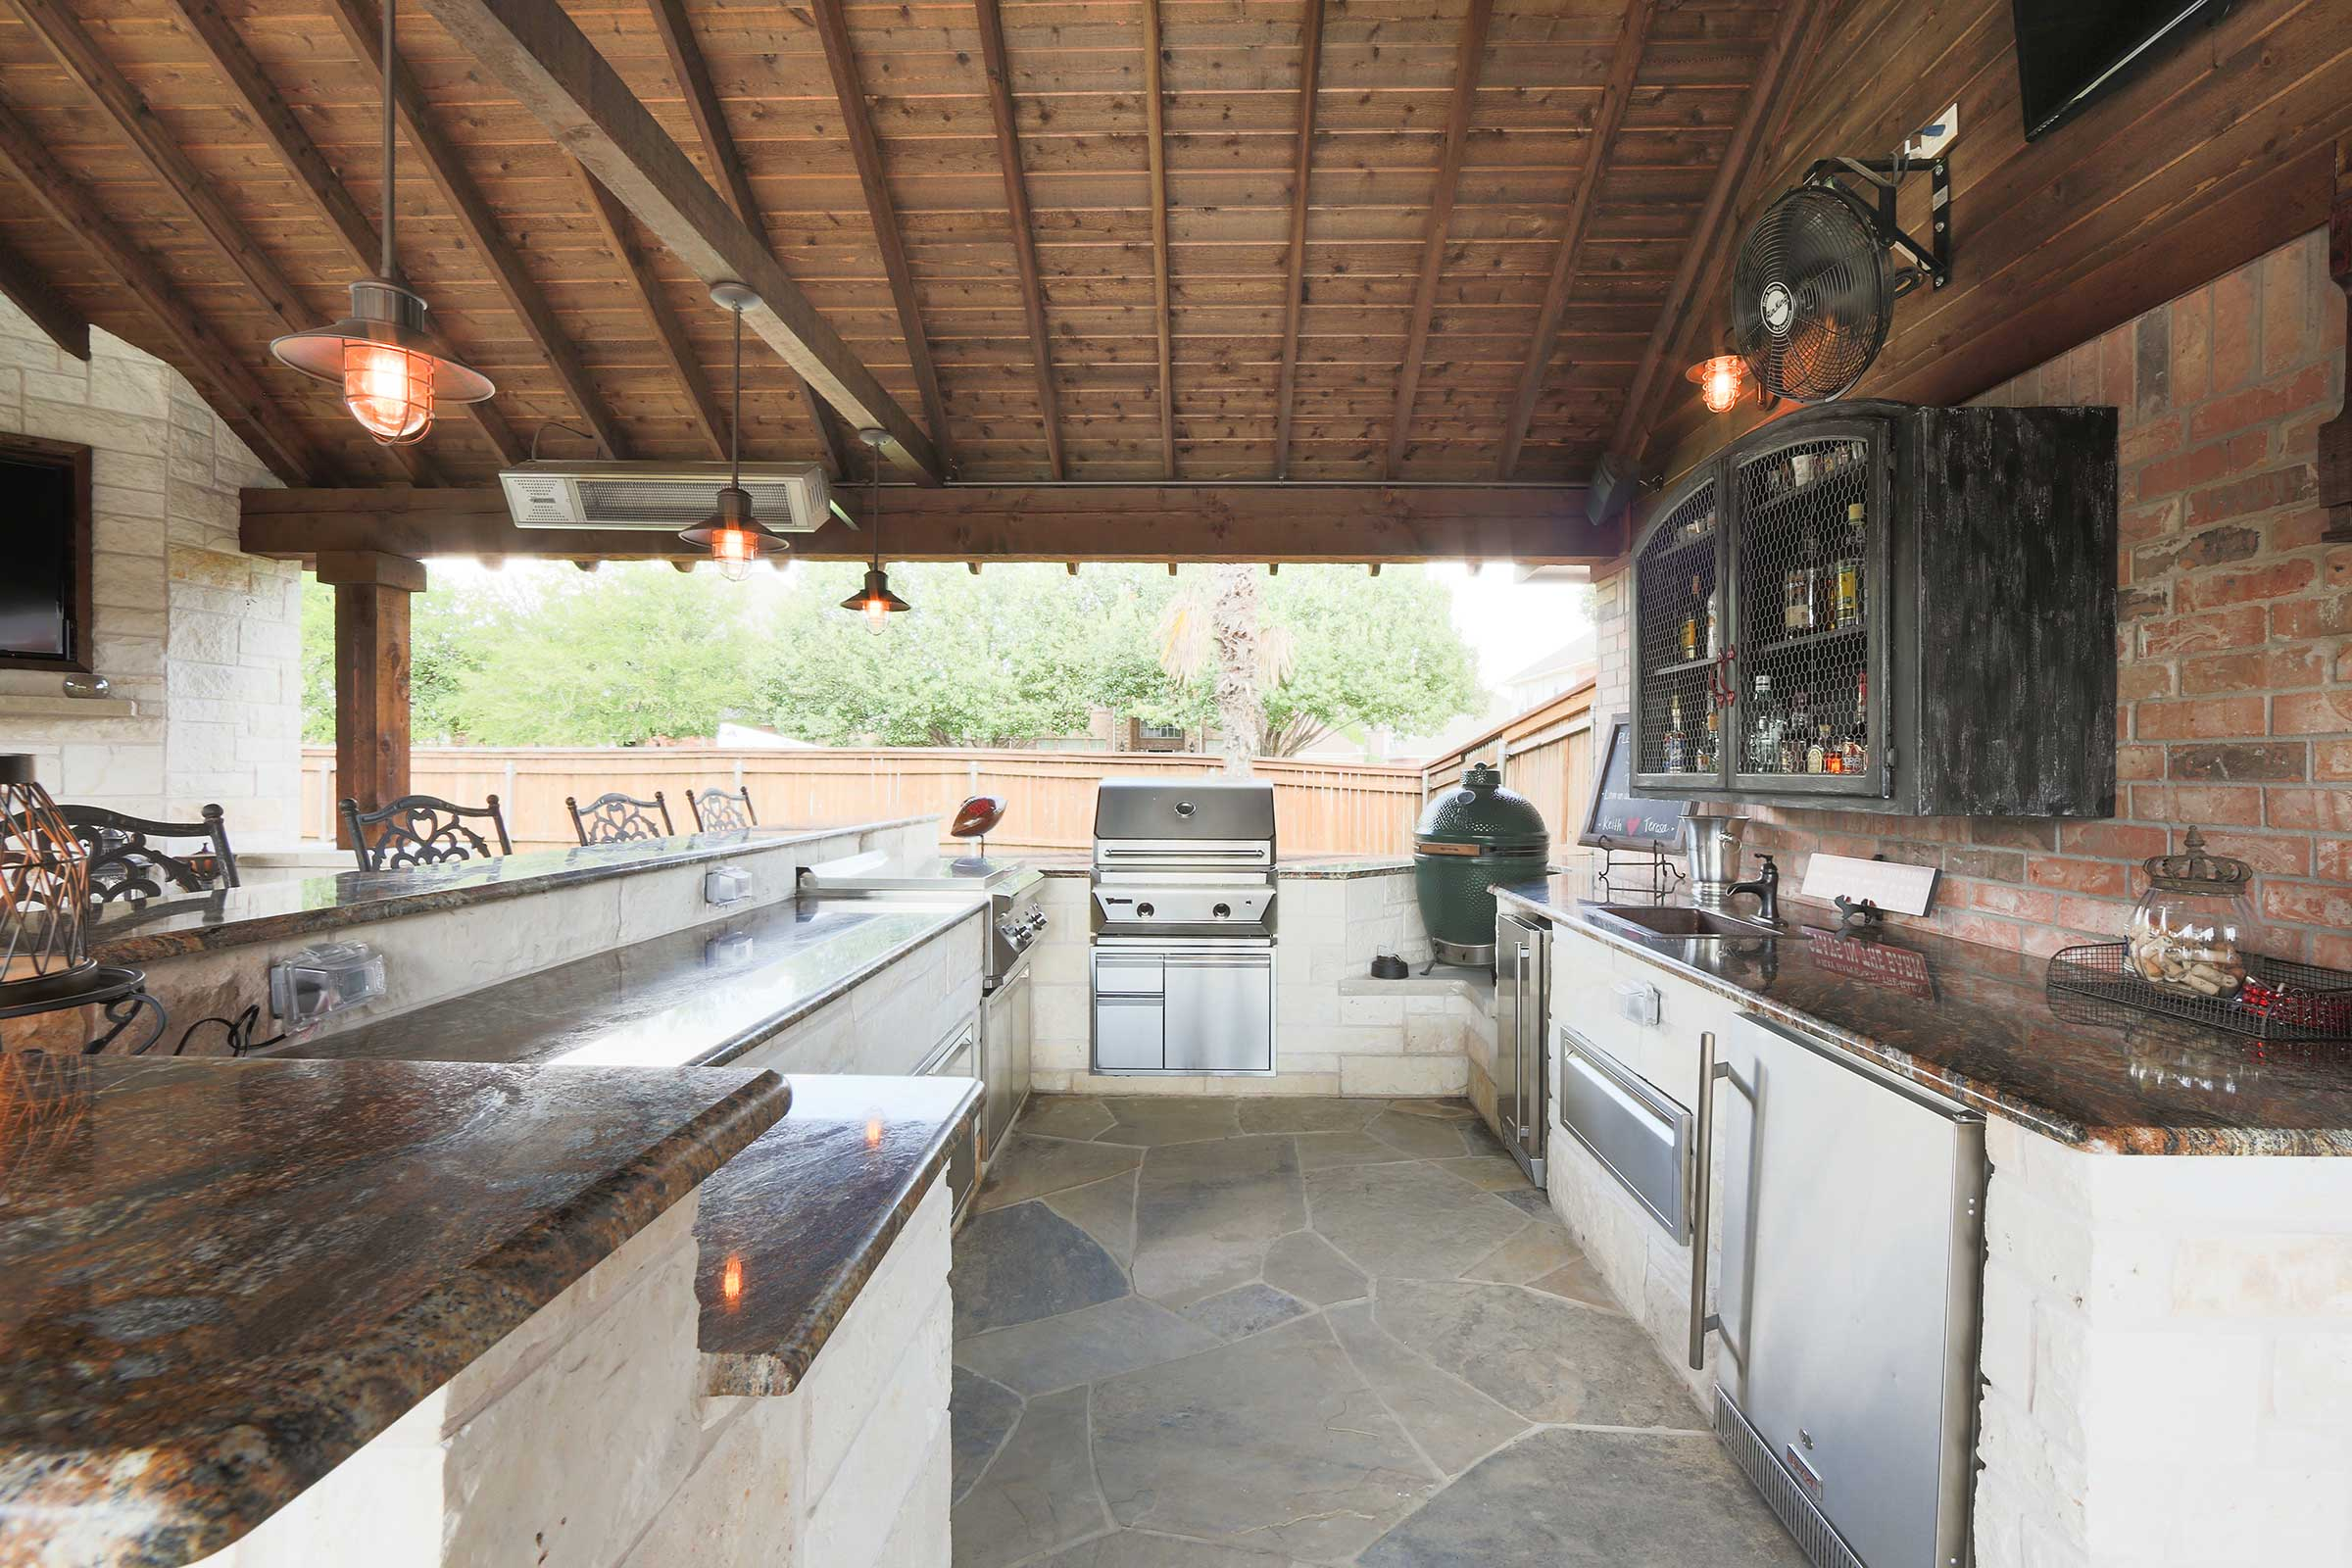 patio covers rustic outdoor kitchen designs | Outdoor Kitchens, Patio Covers | Fort Worth, Burleson TX ...